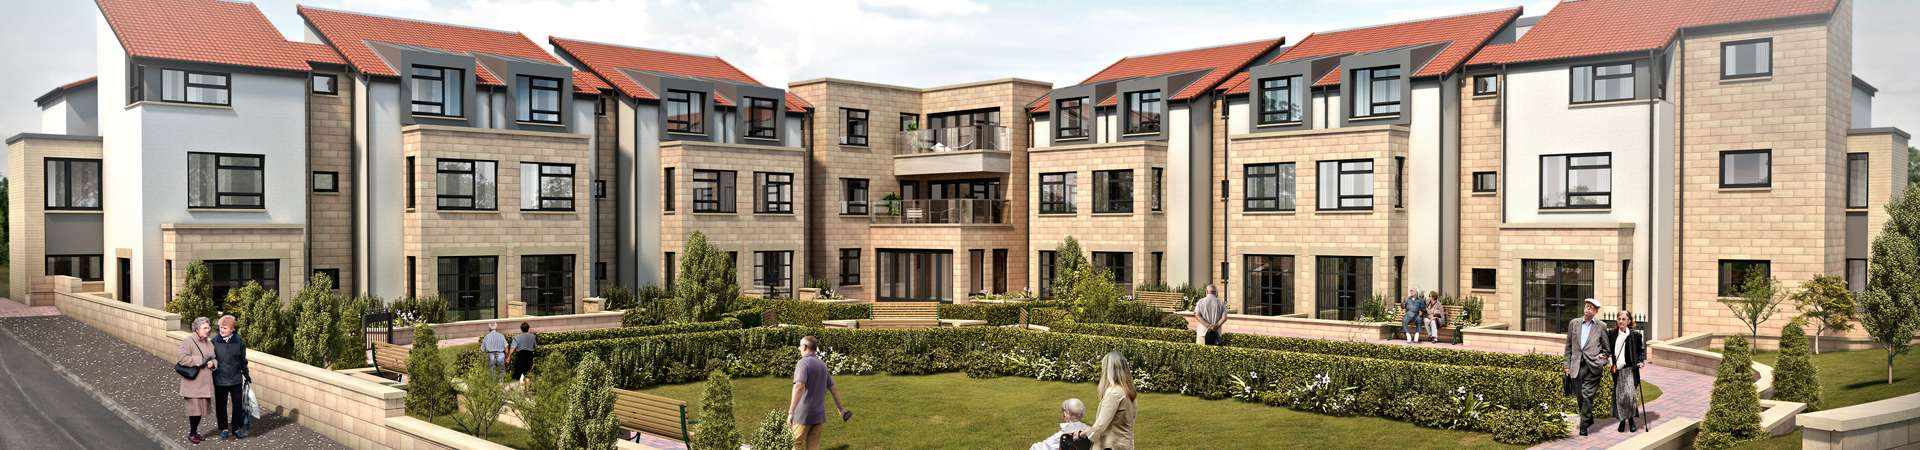 CGI image of Cramond Residence - care home in Edinburgh